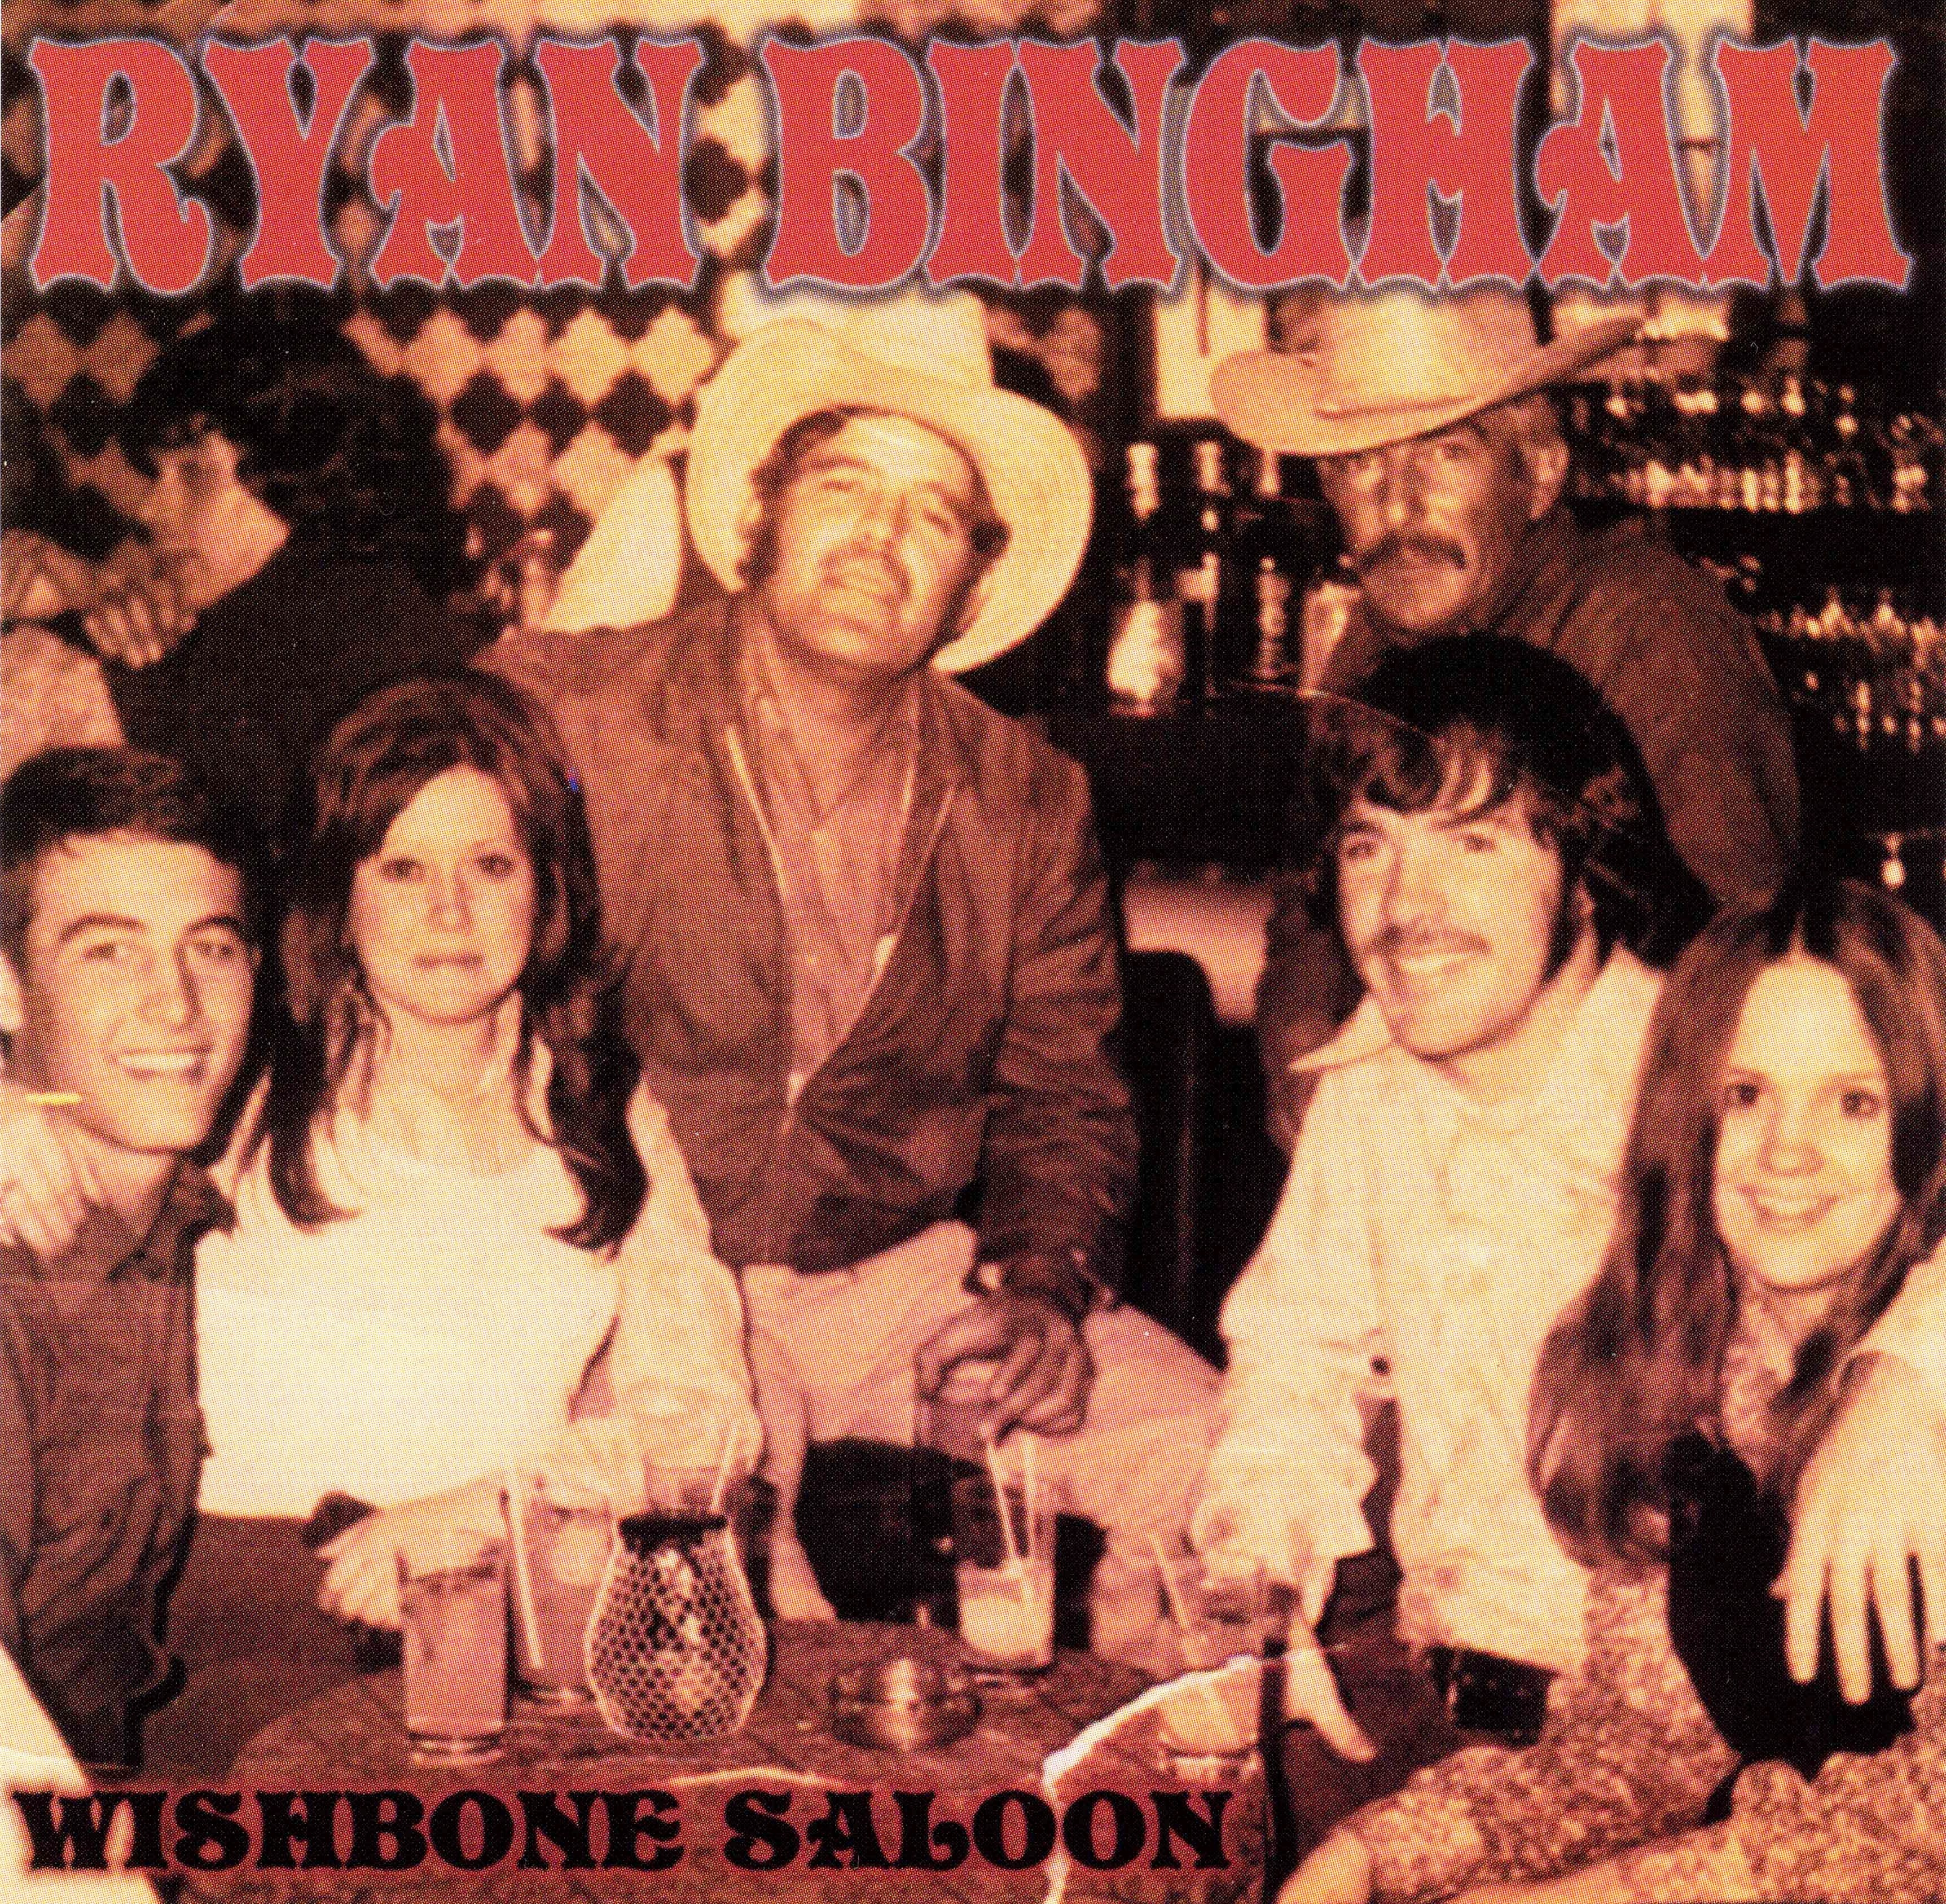 Ryan Bingham - Wishbone Saloon (2002) CD 10